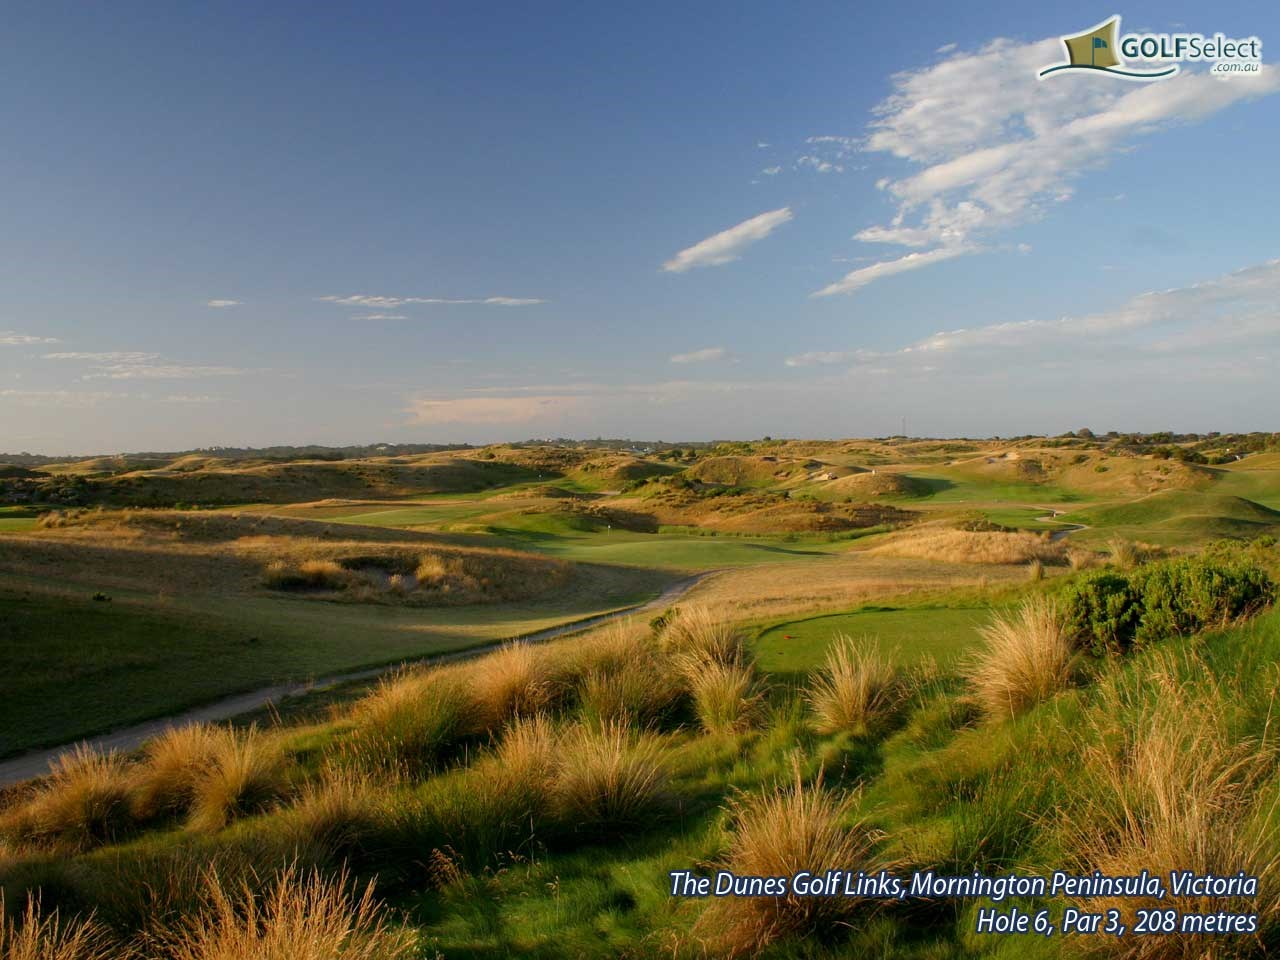 The Dunes Golf Links Hole 6, Par 3, 208 metres